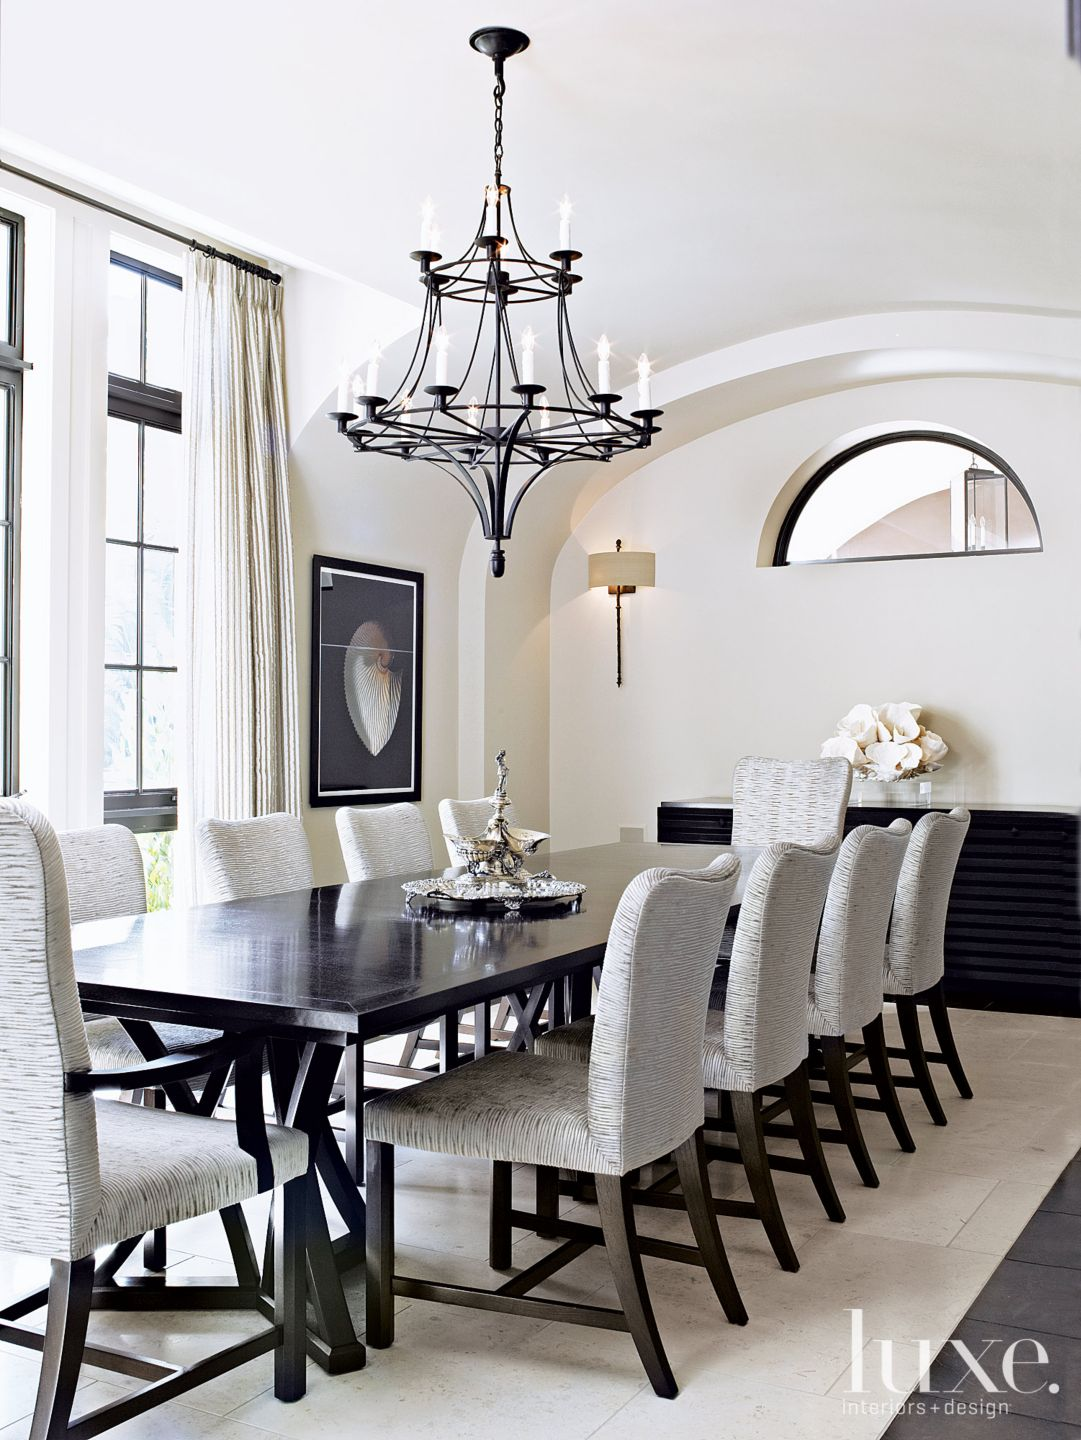 Contemporary Cream Dining Room with Barrel Vault Ceiling